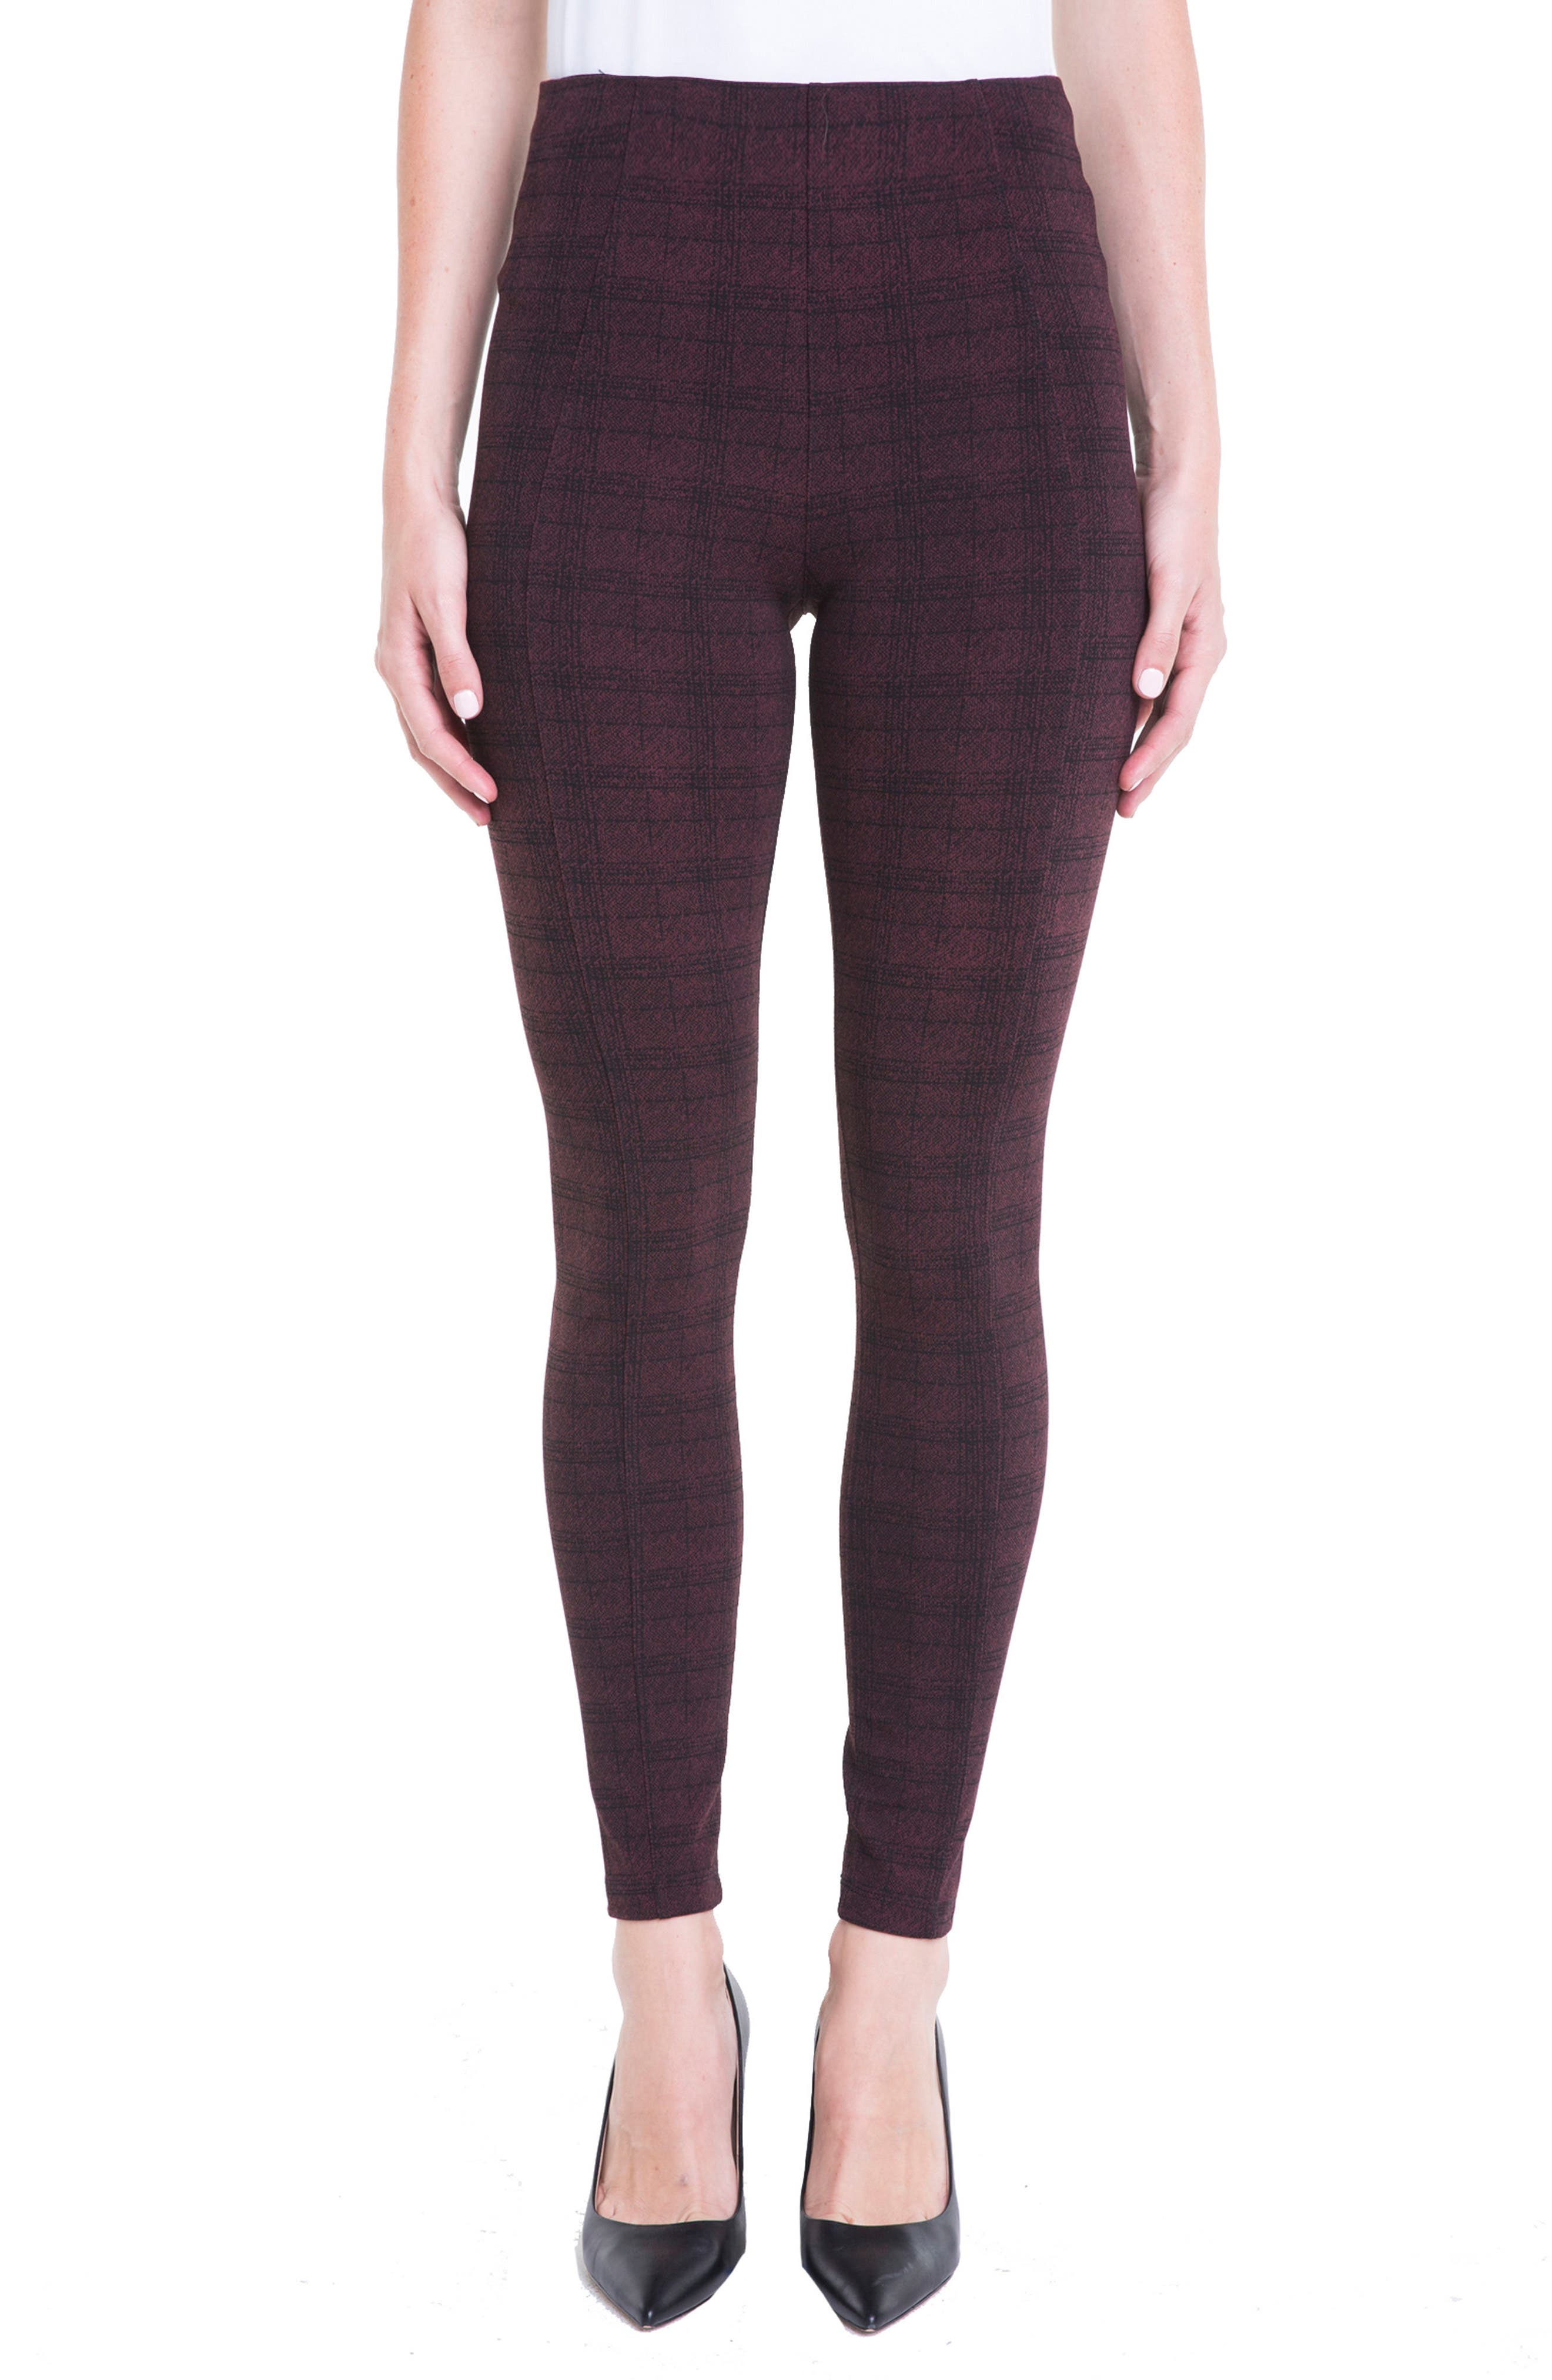 Liverpool Jeans Company Reese Ankle Leggings